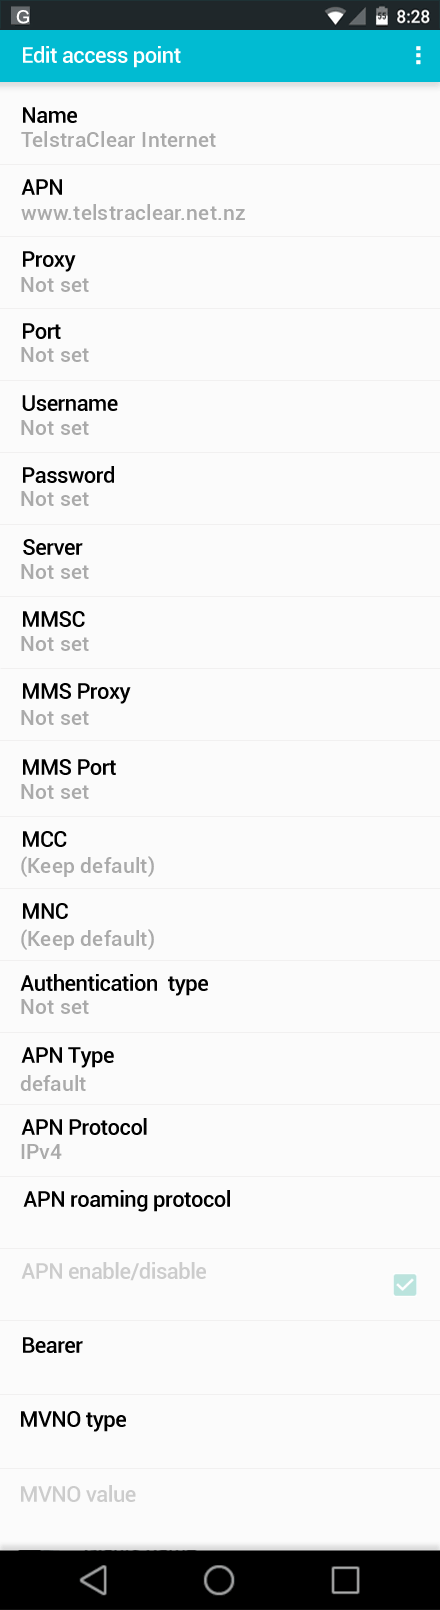 TelstraClear Internet APN settings for Android